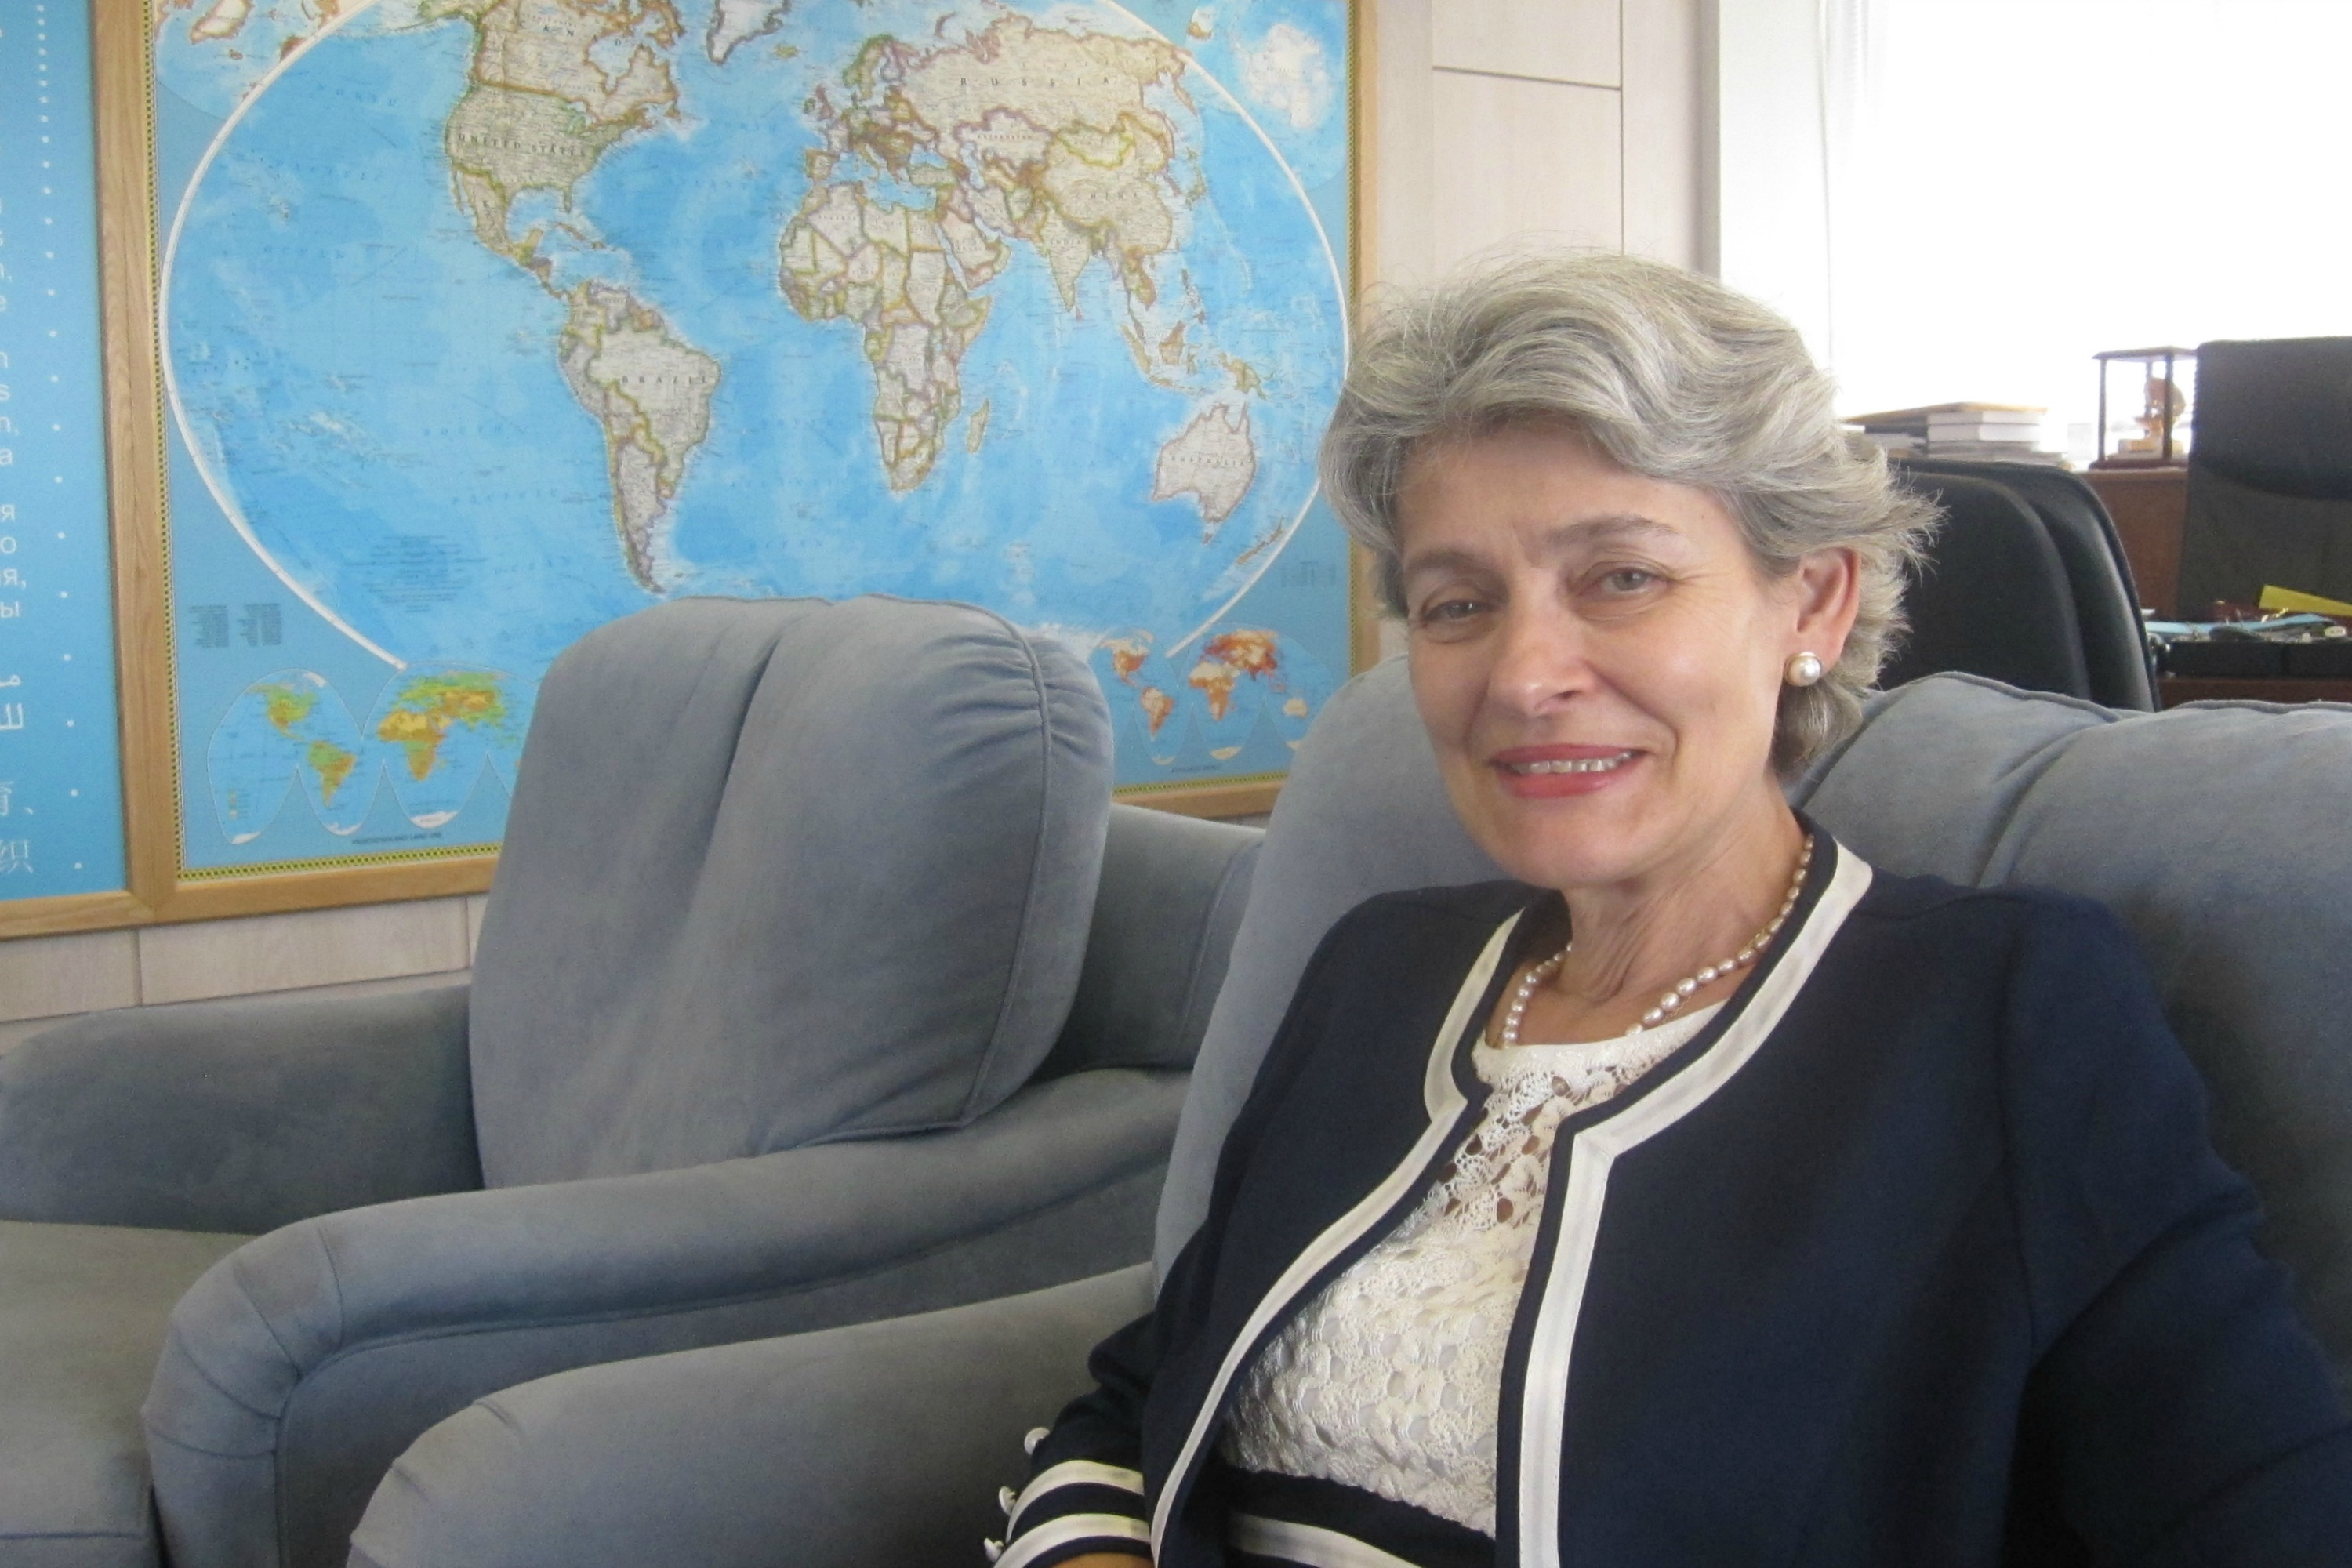 Irina Bokova, photo Georgi Gotev